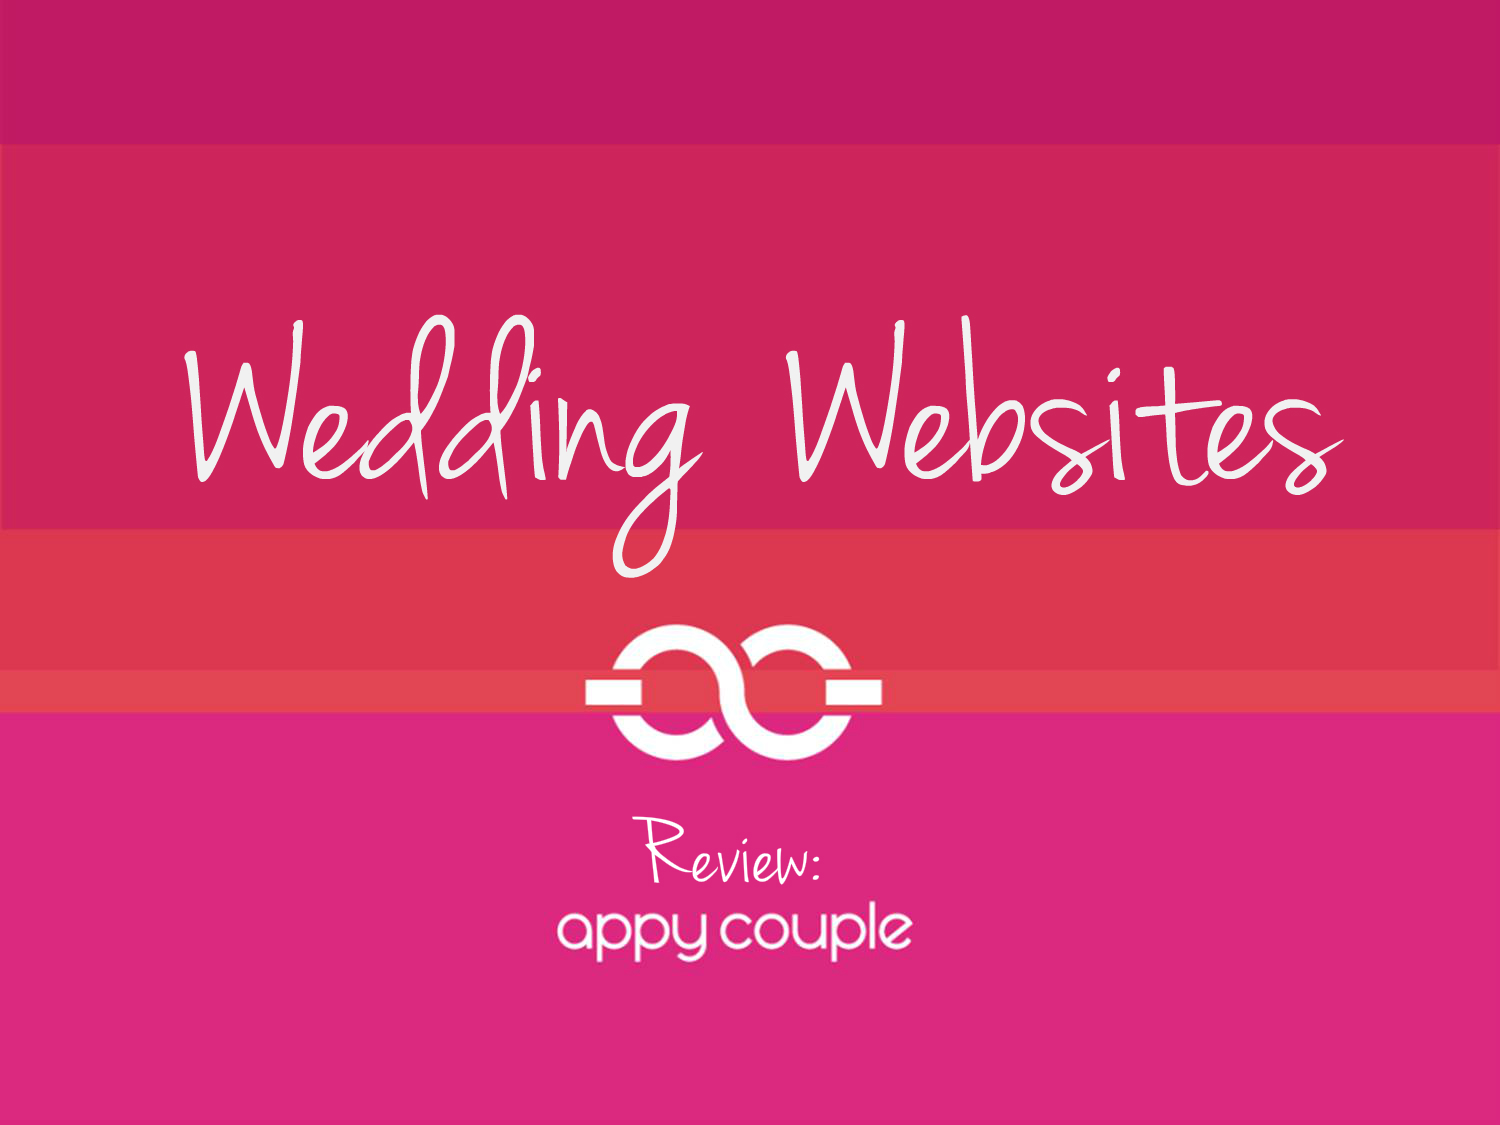 appy-couple-wedding-websites-review-peachfully-chic